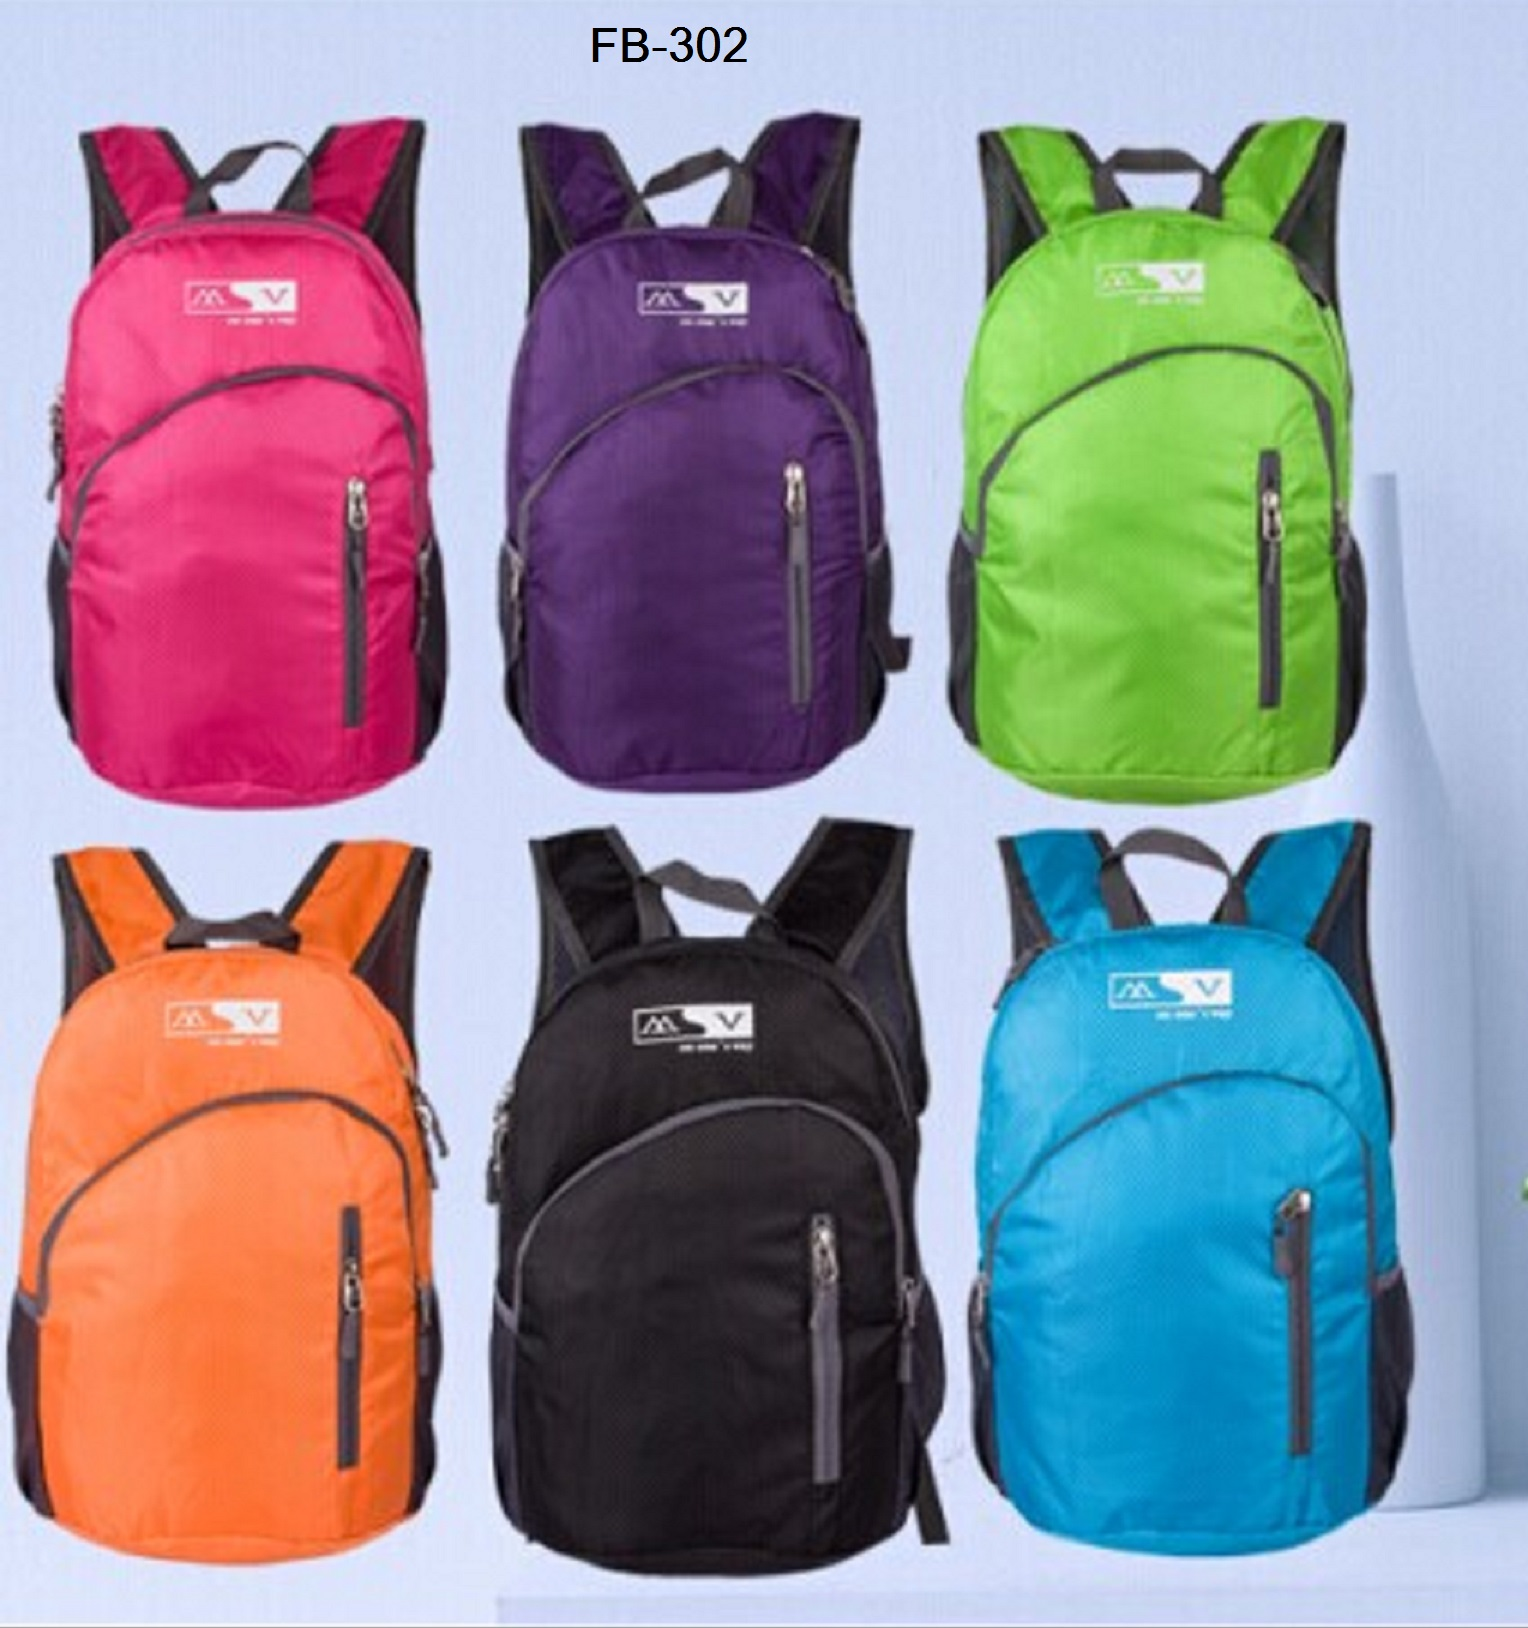 Foldable Backpack - FB302